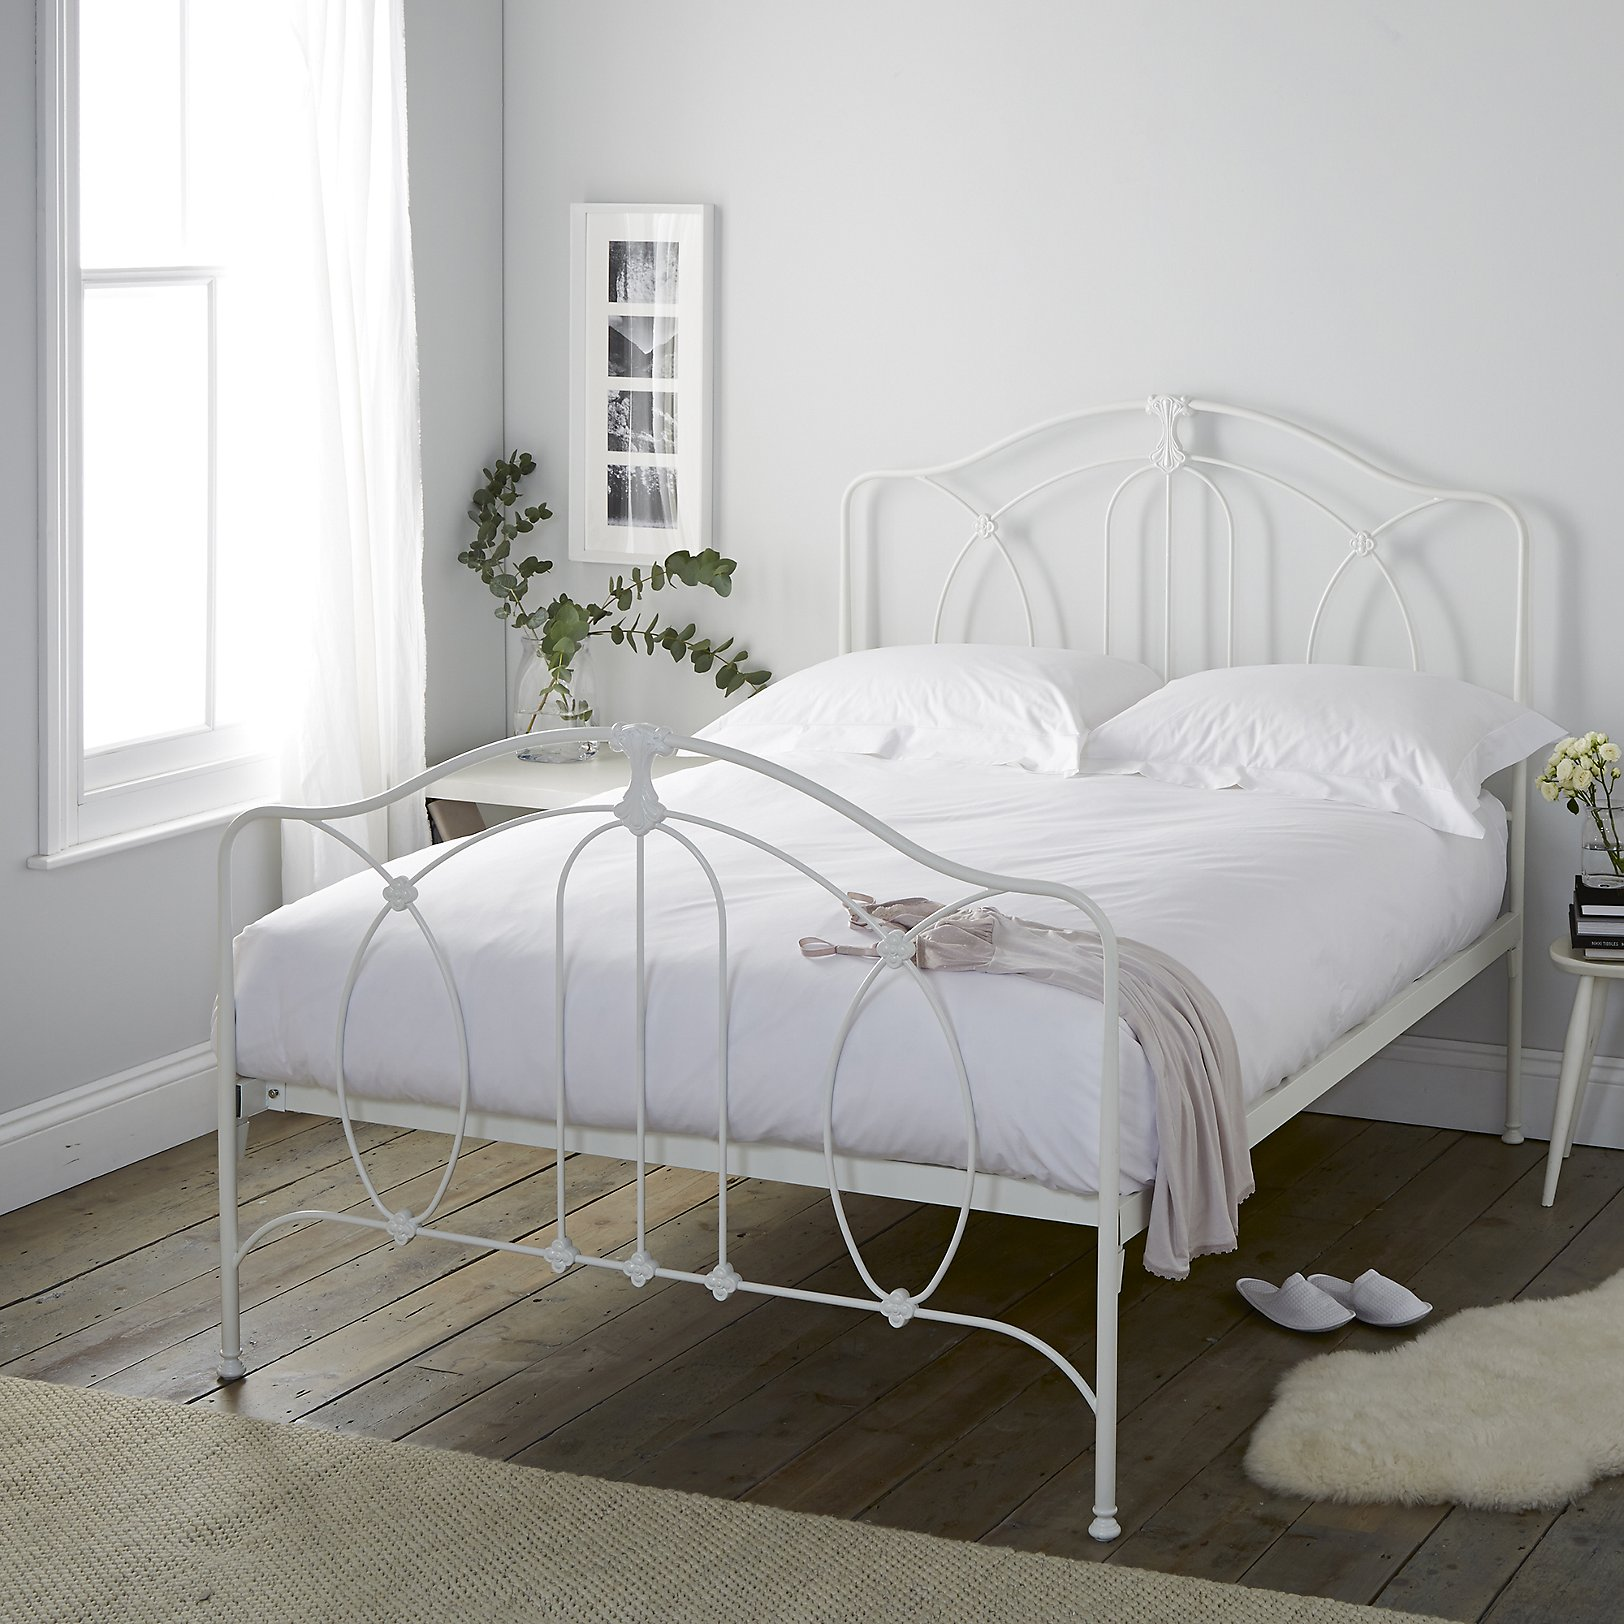 Ashwell Bed. Beds   Metal  Wooden   Upholstered   The White Company UK